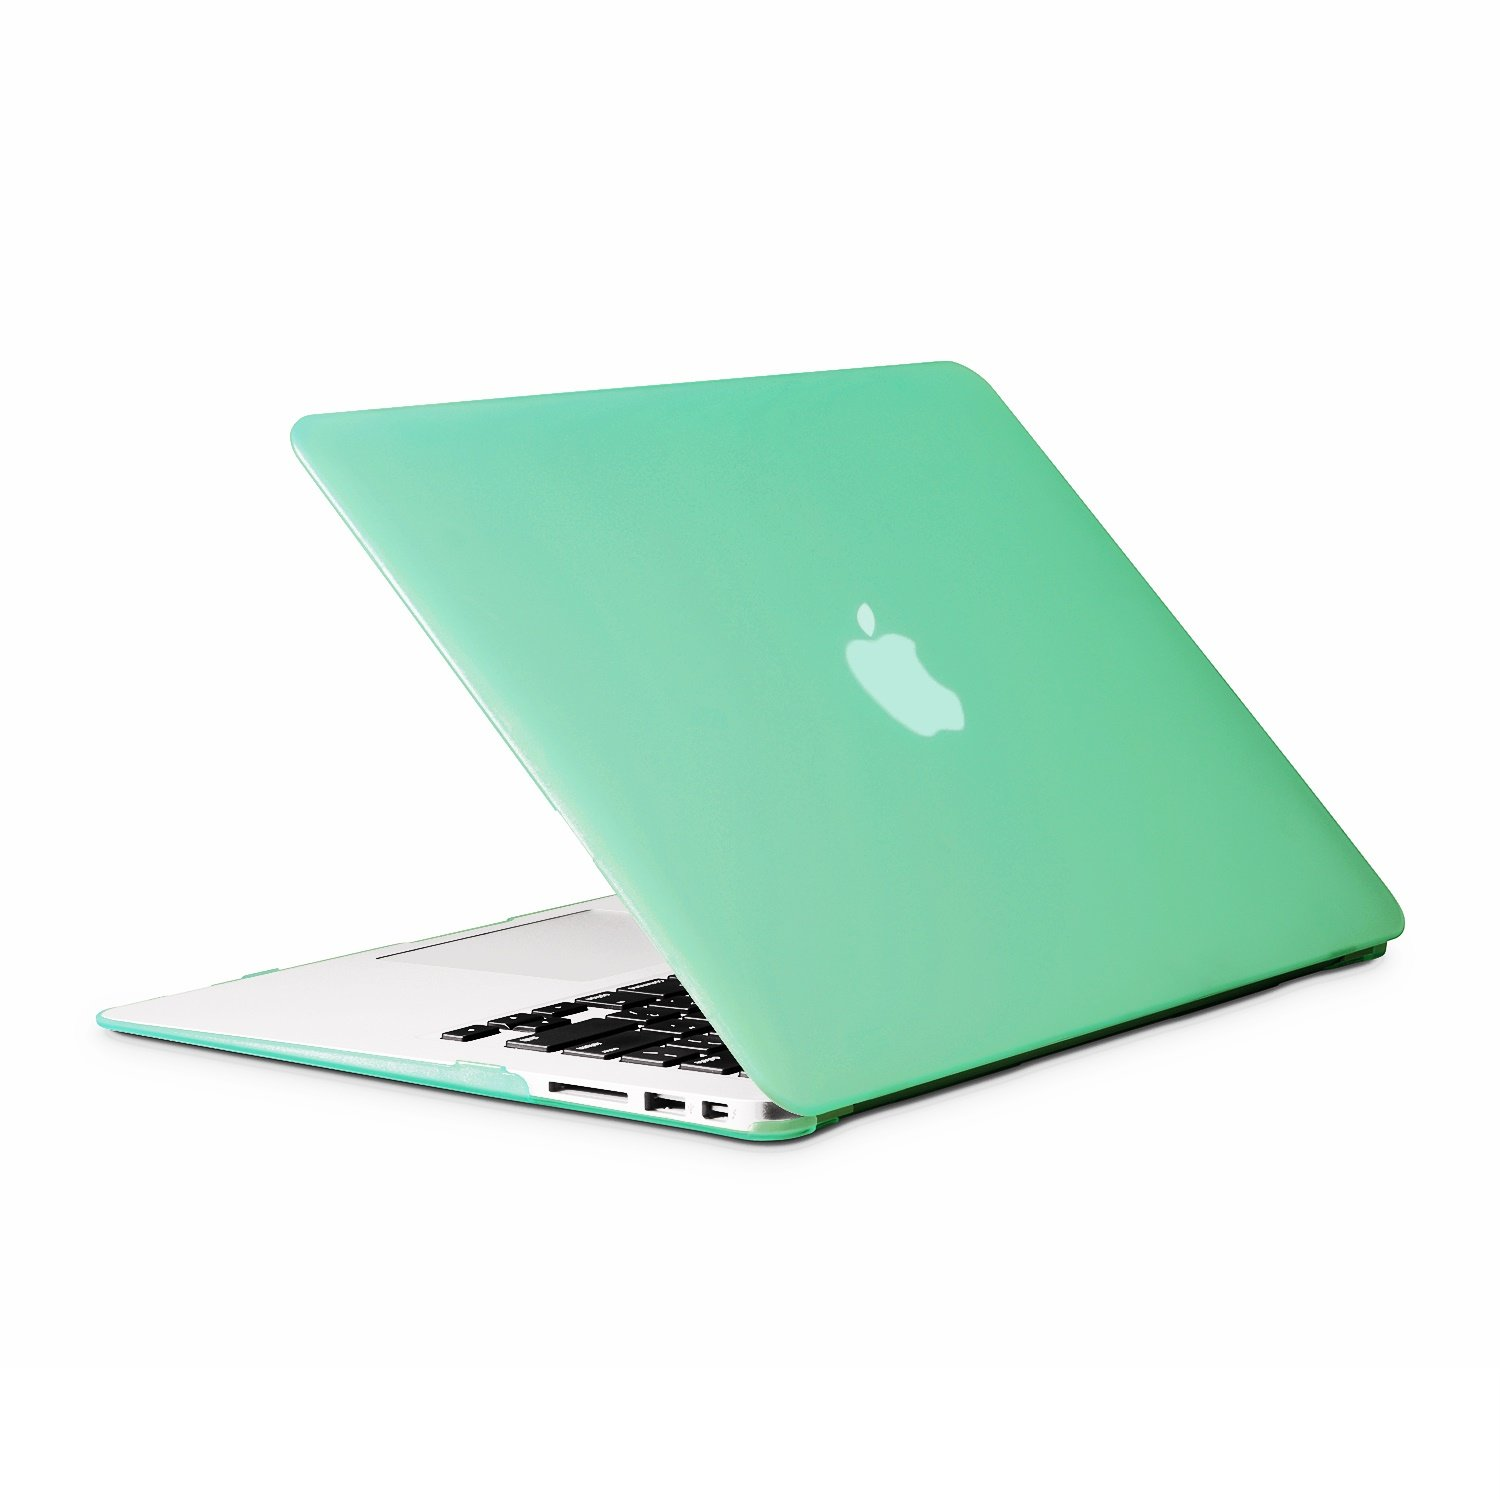 Unik Case-11 Inch Frosted Coating Rubberized Hard Case for Macbook 11 Air A1370/A1465 Shell Cover-Frosted Hot Blue